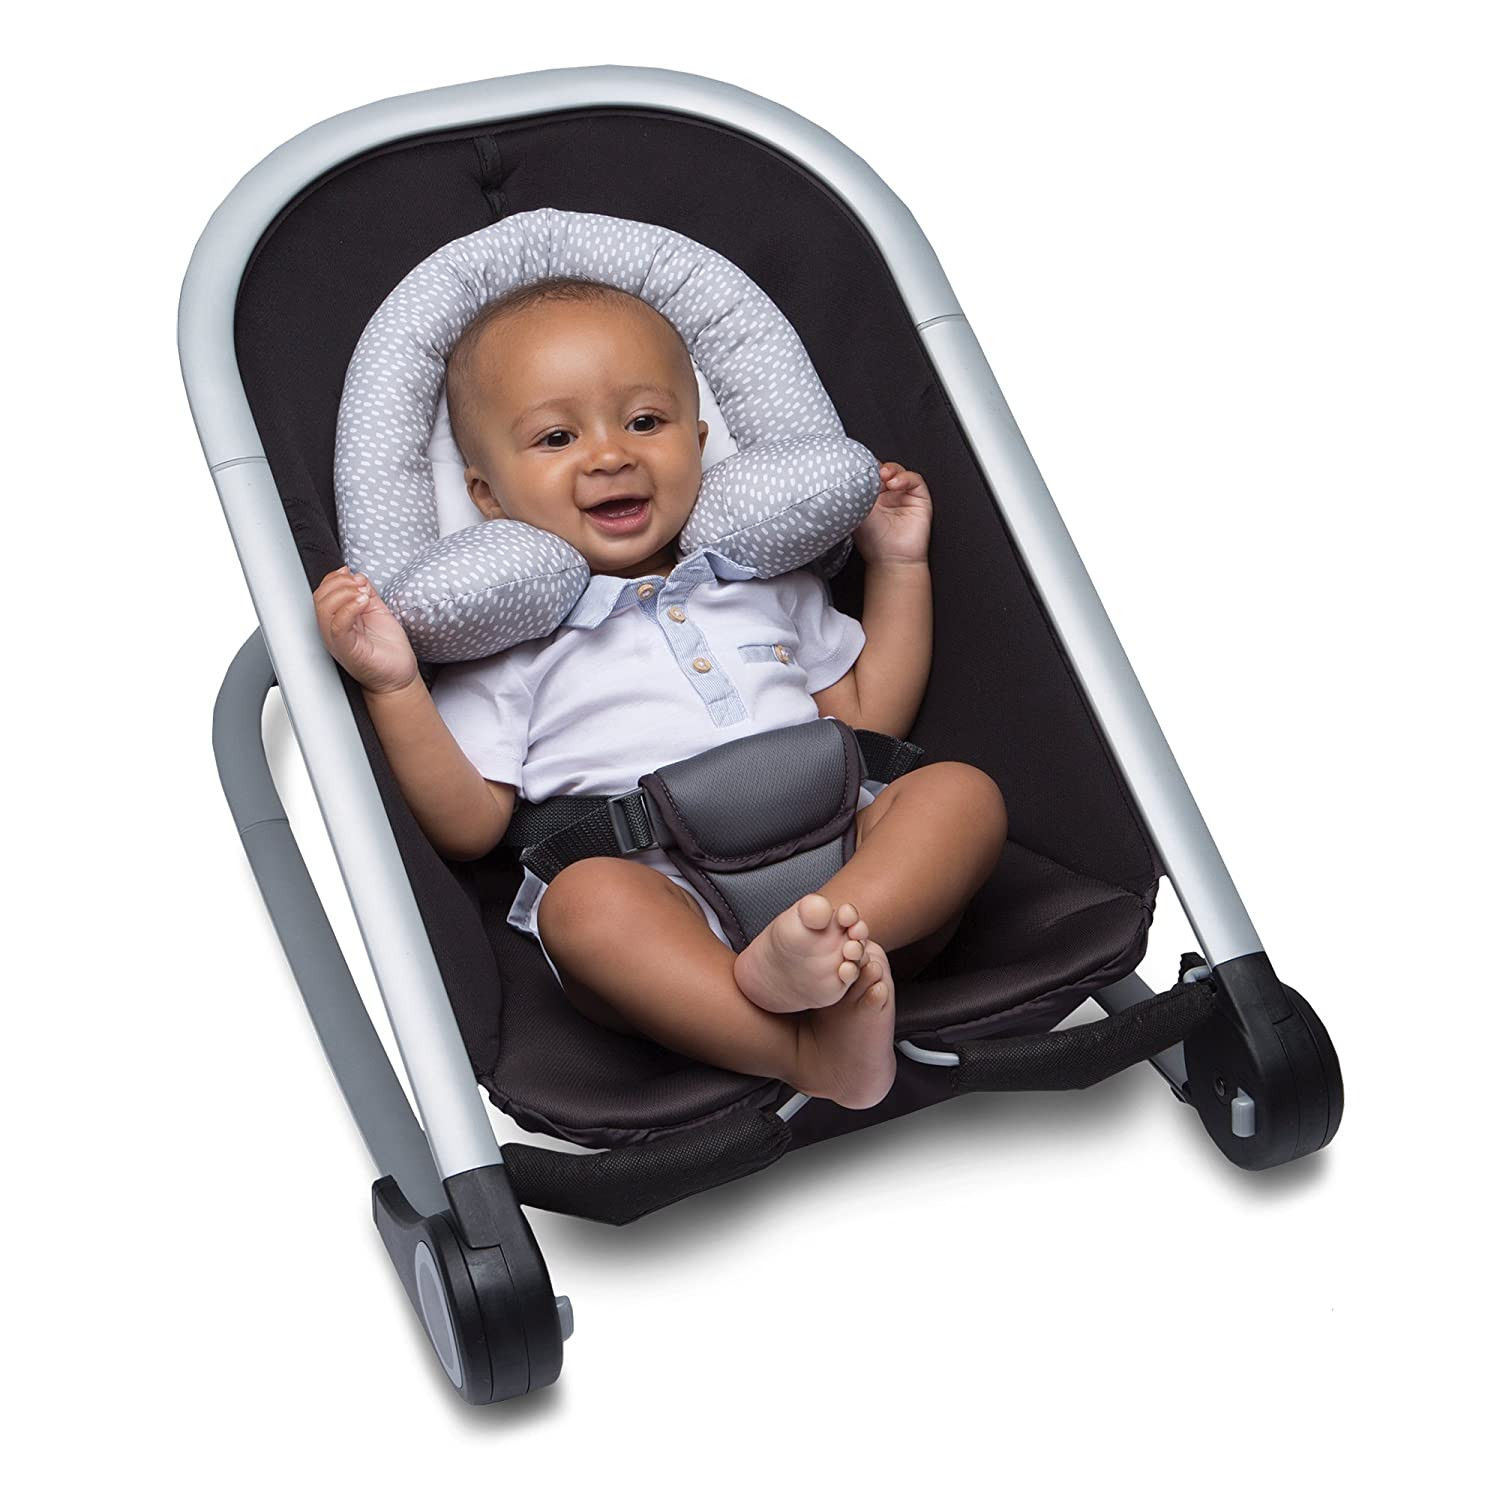 Gray Boppy Organic Lets Go Fabric Head and Neck Support